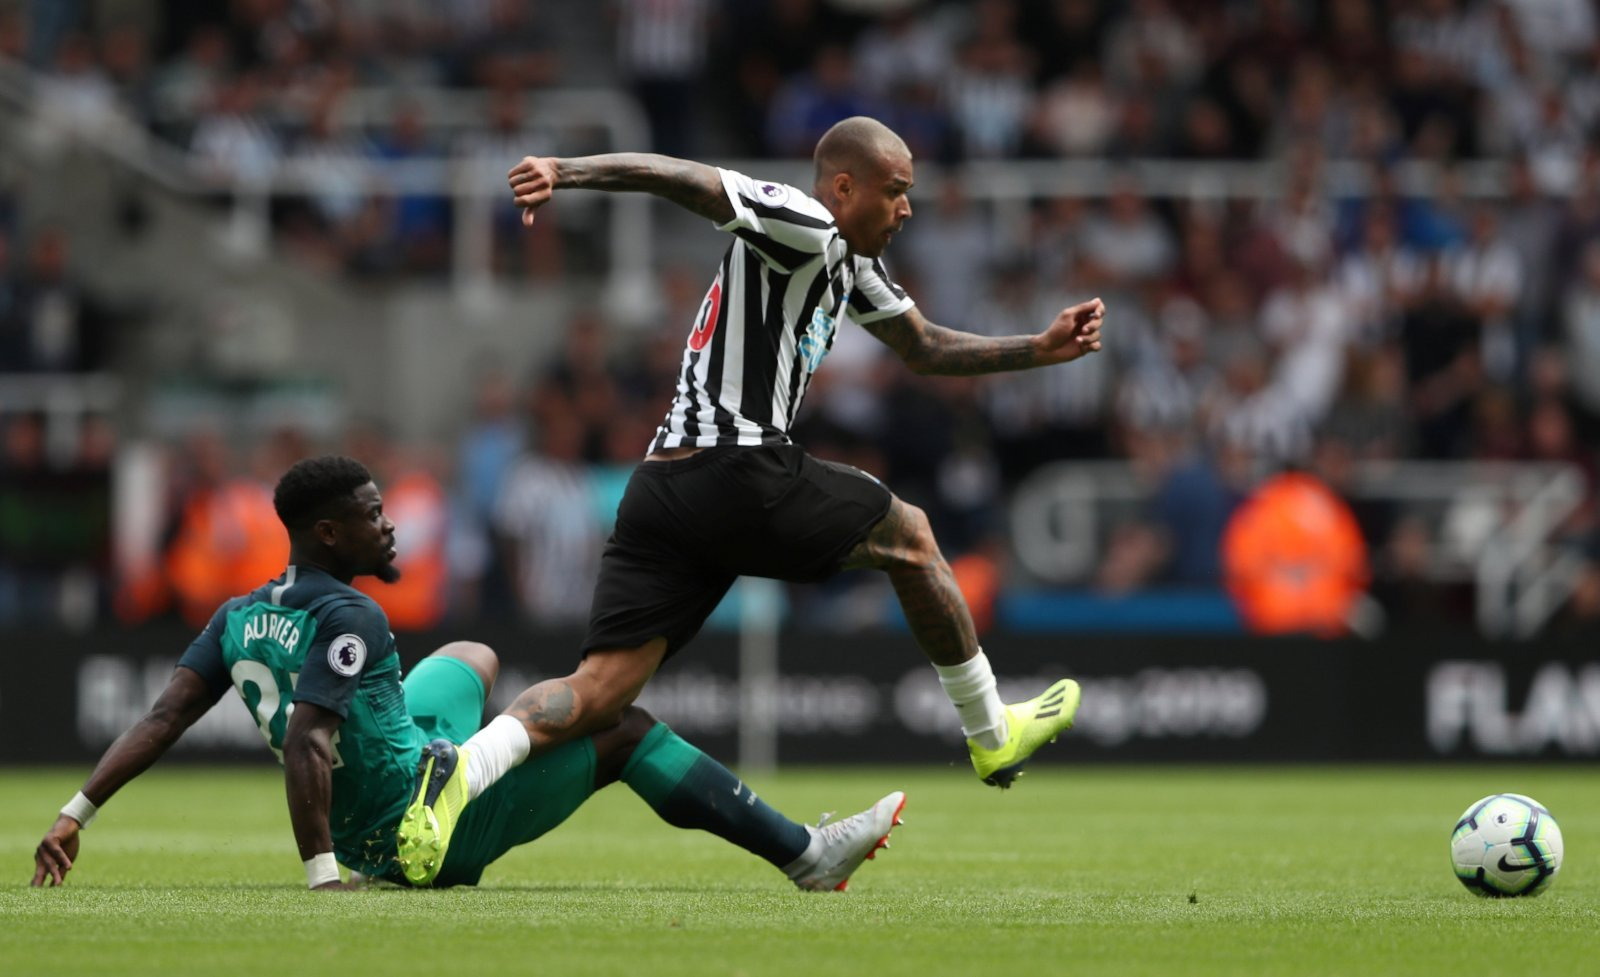 Some Newcastle fans are wrong: Kenedy will come good despite testing start to season